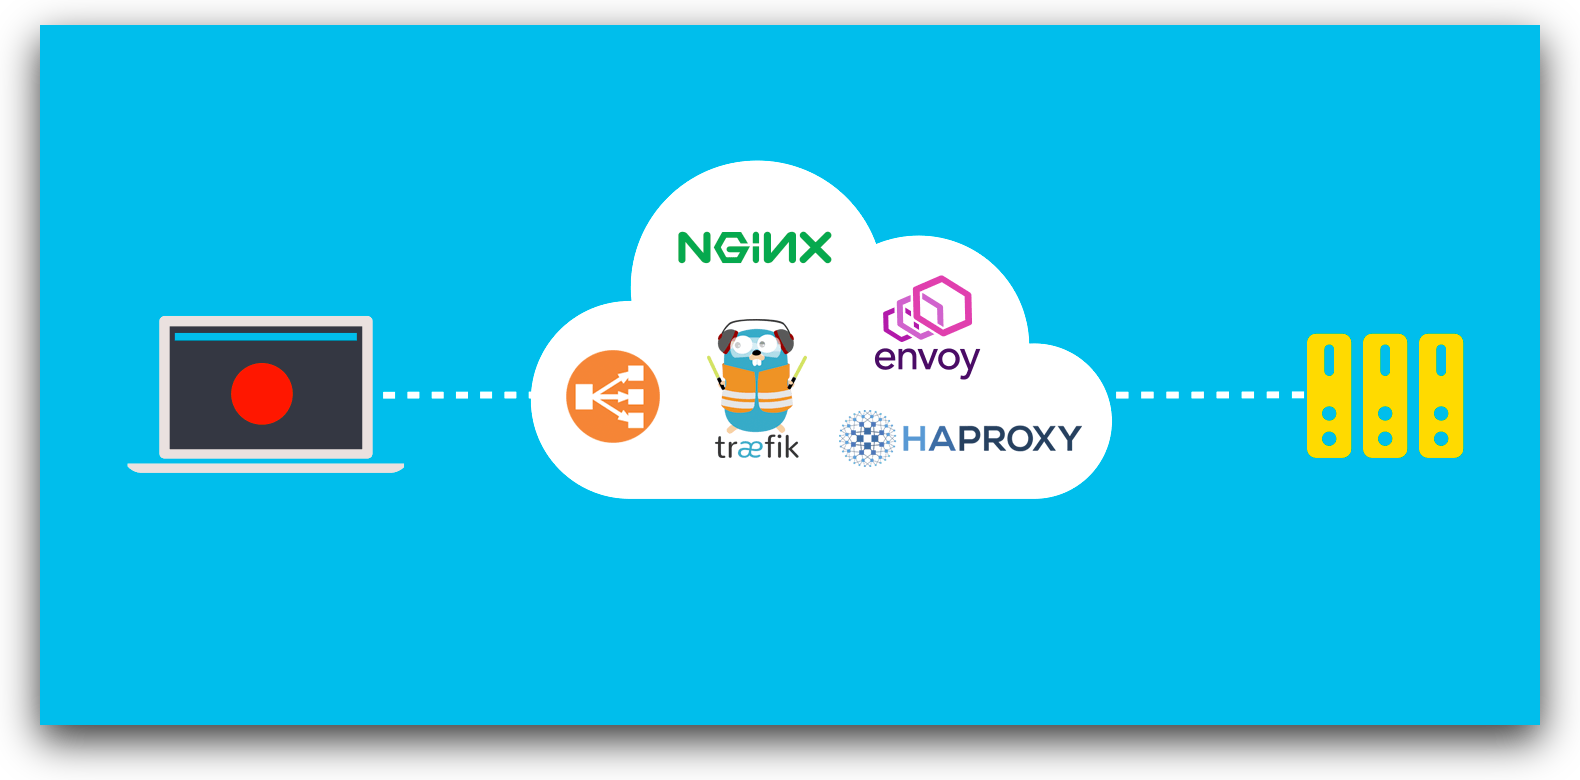 Benchmarking 5 Popular Load Balancers: Nginx, HAProxy, Envoy